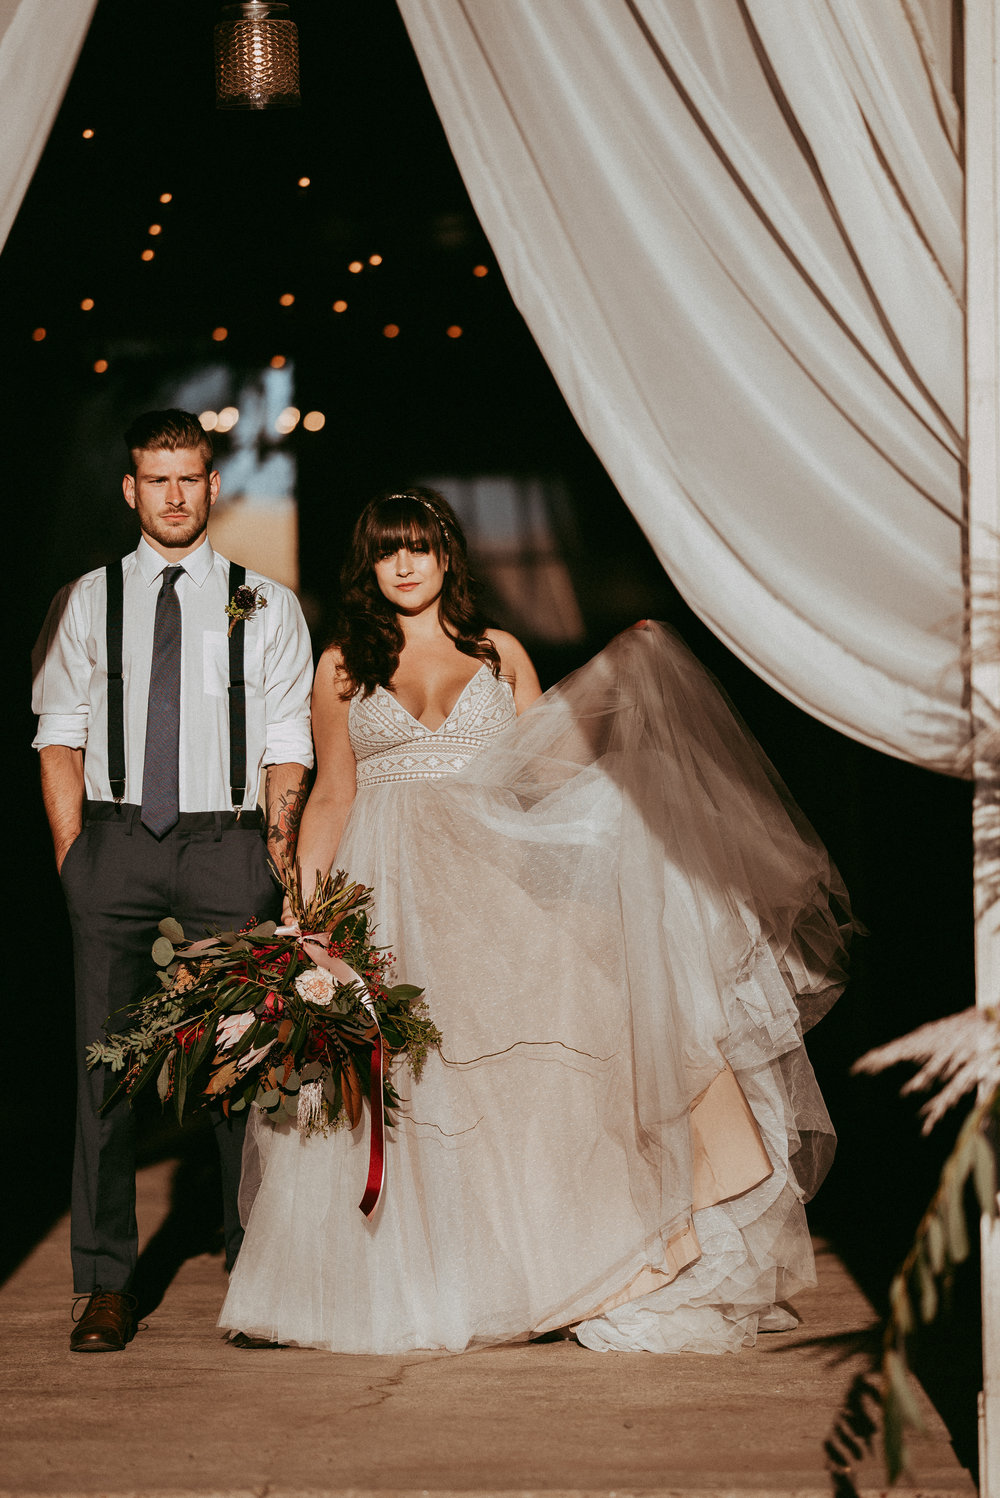 Colfax Spokane Wedding Image